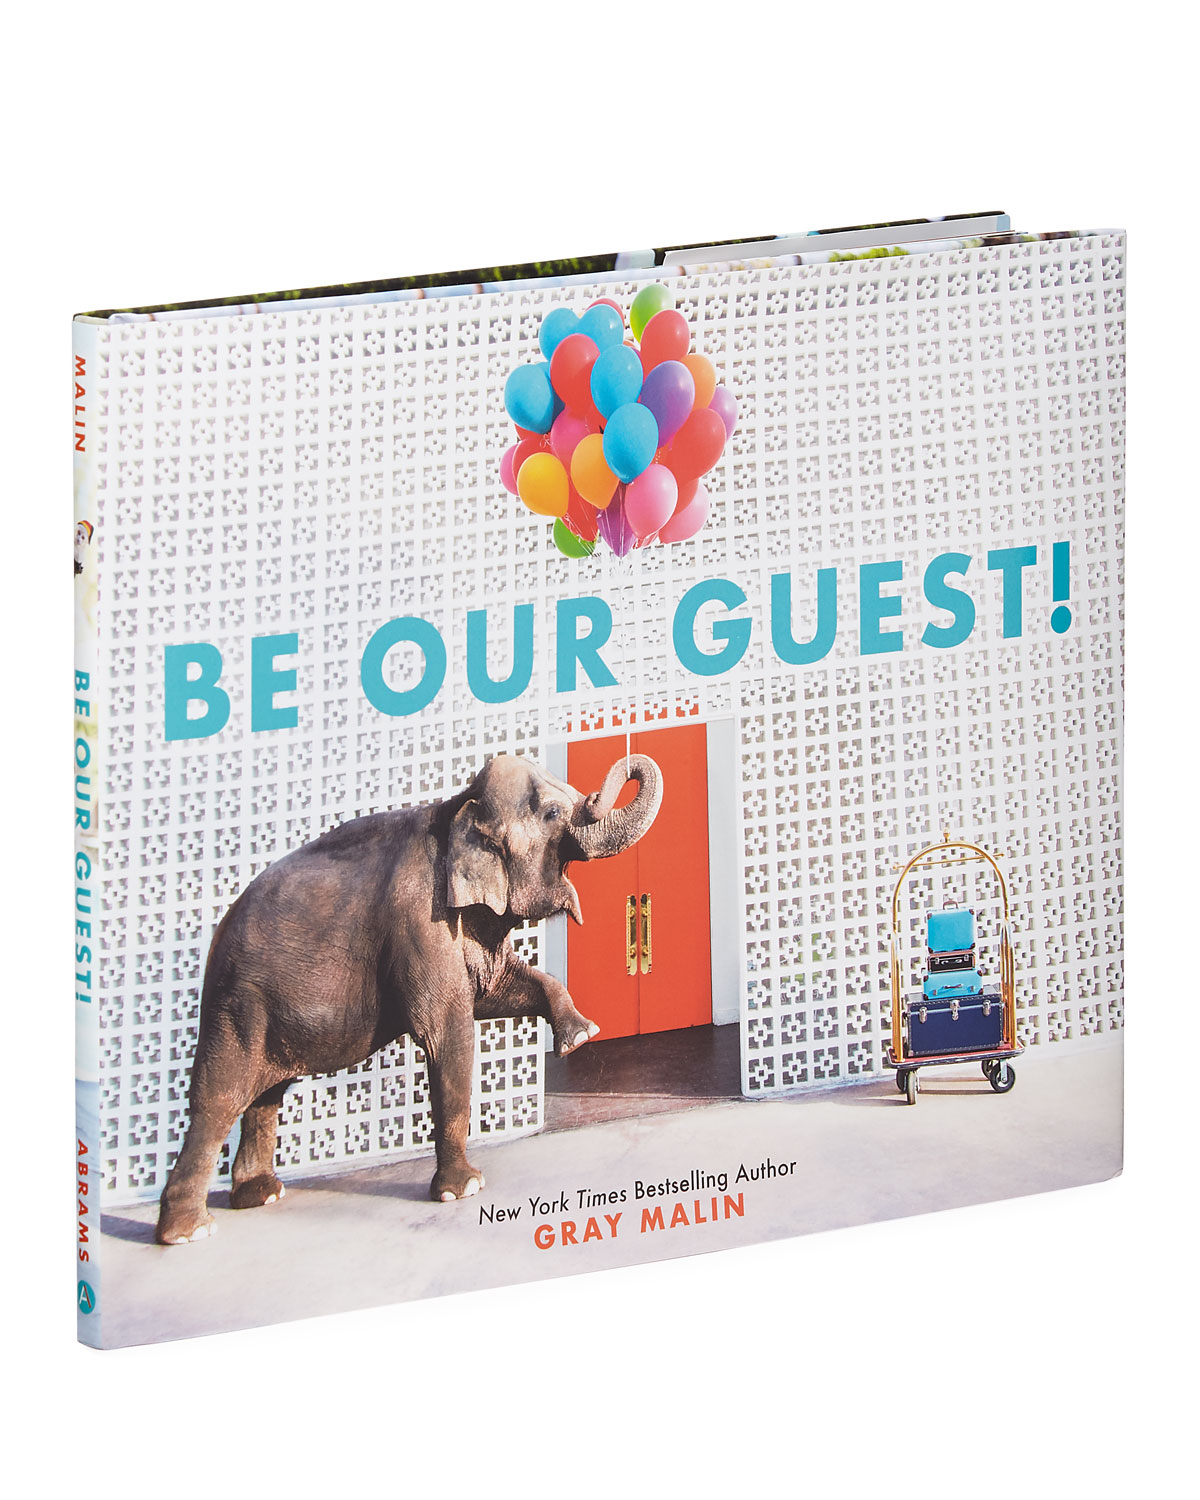 Be Our Guest Book by Gray Malin